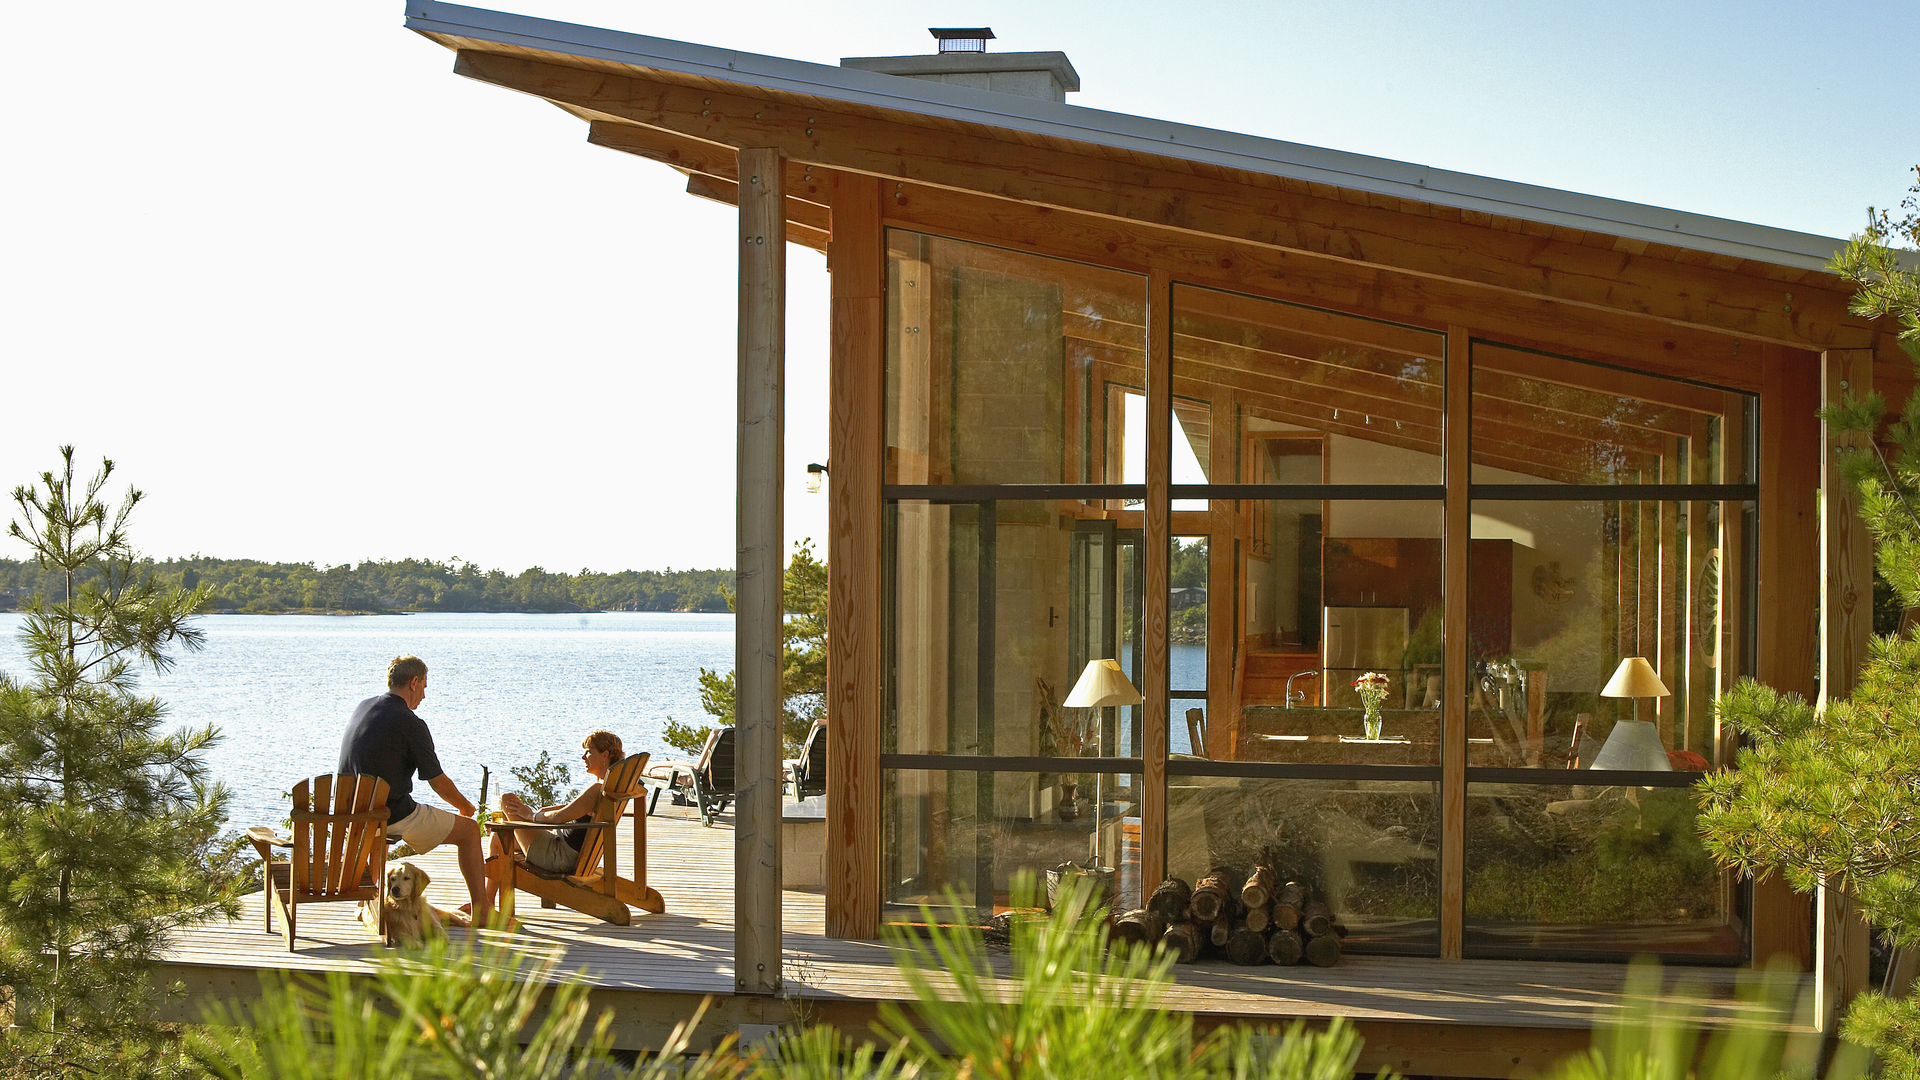 Post and Beam Georgian Bay cottage with wide views of the natural surroundings and water